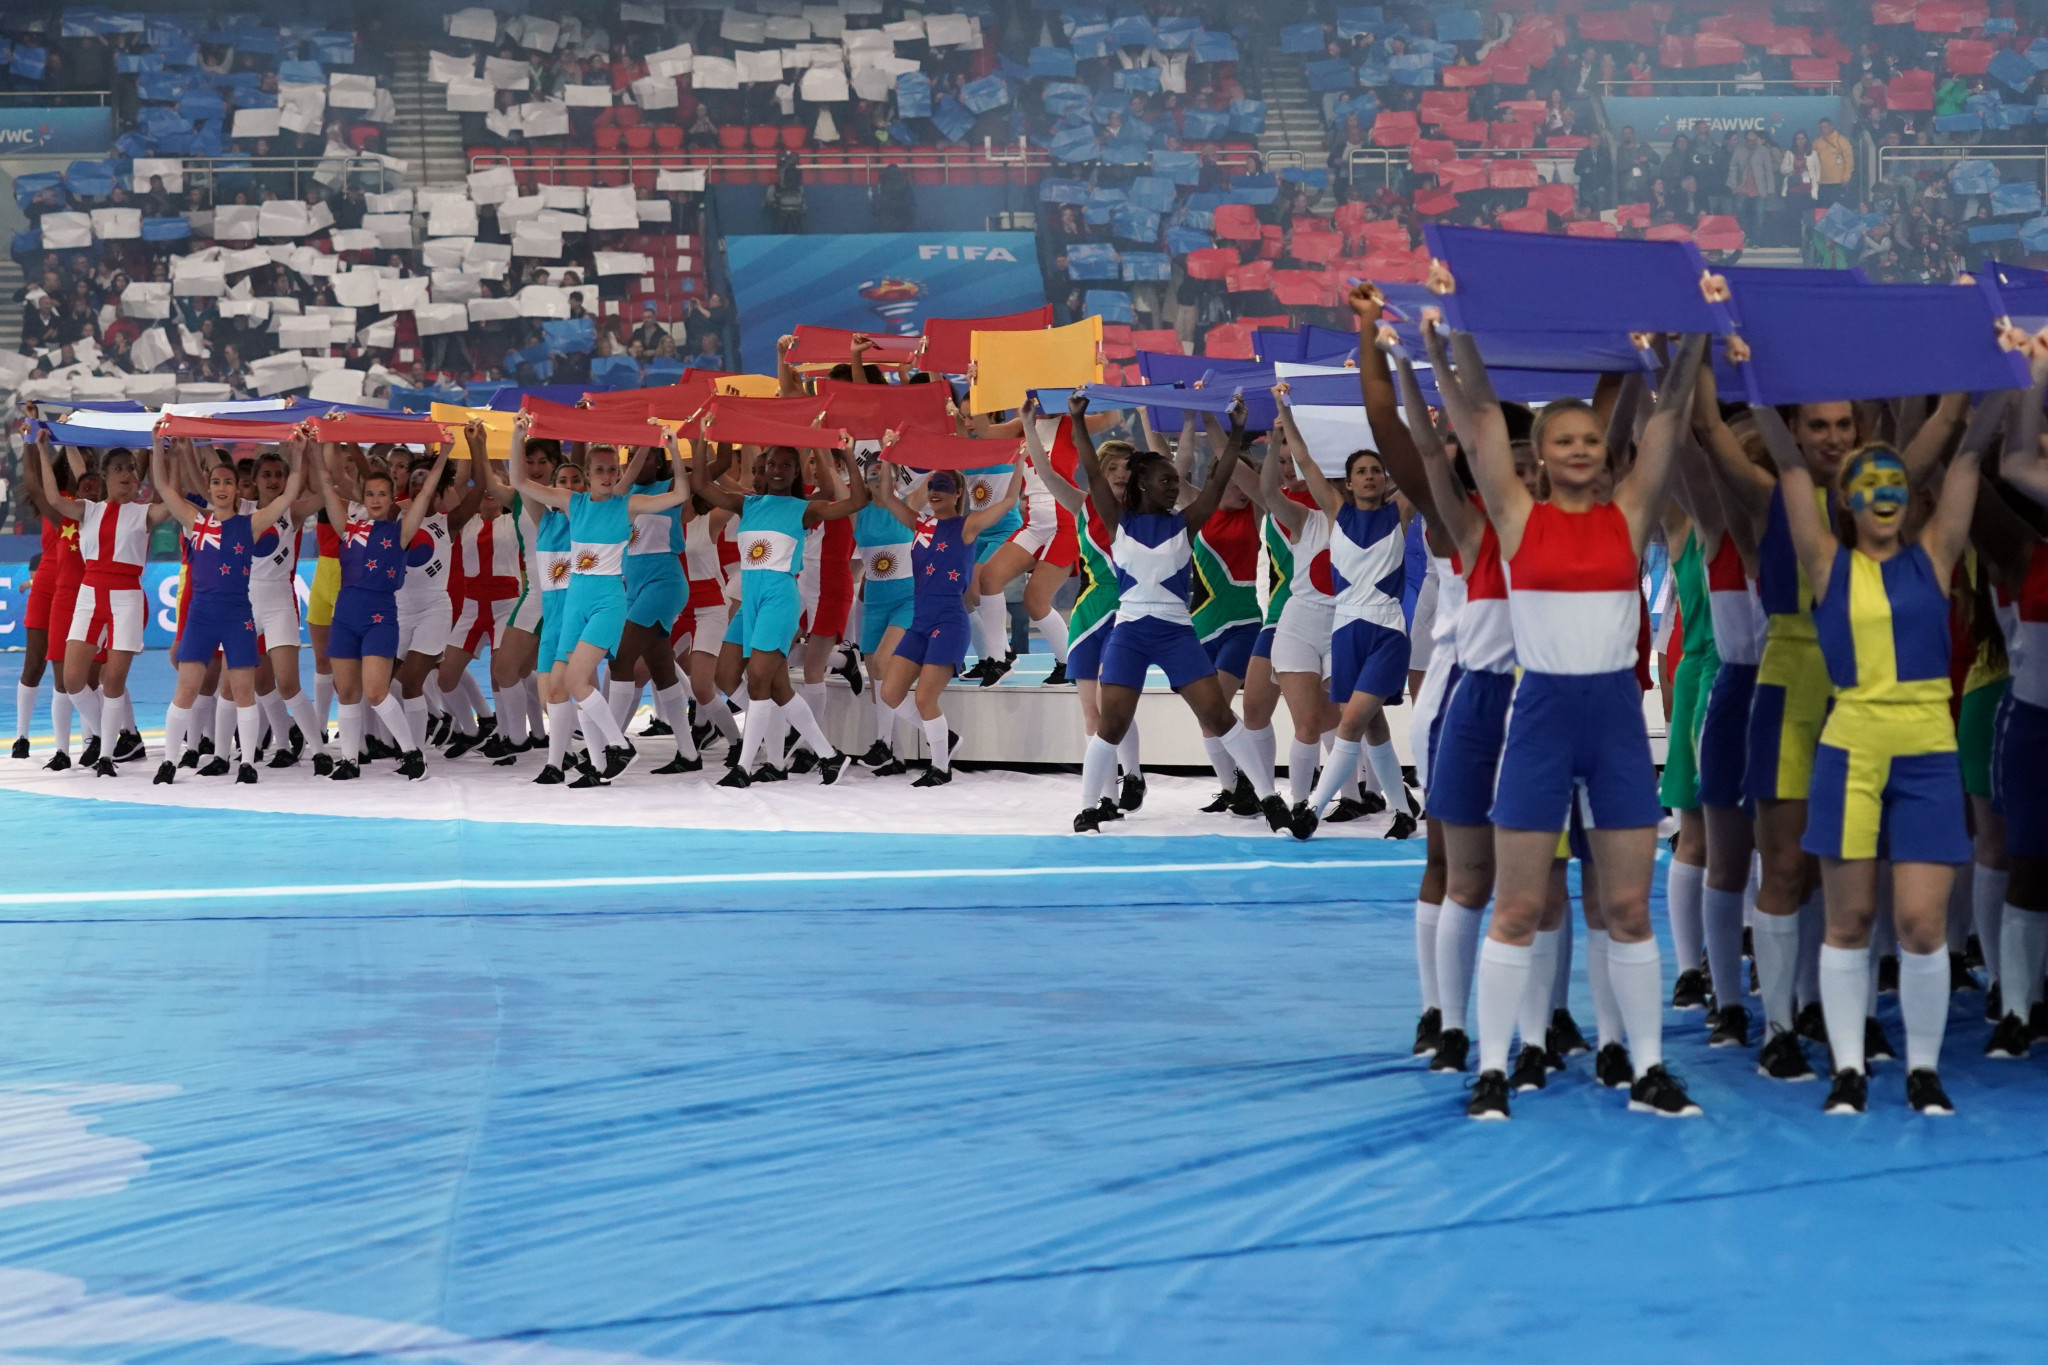 As the first match of the 2019 FIFA Women's World Cup, a brief Opening Ceremony took place before the game begun ©Getty Images